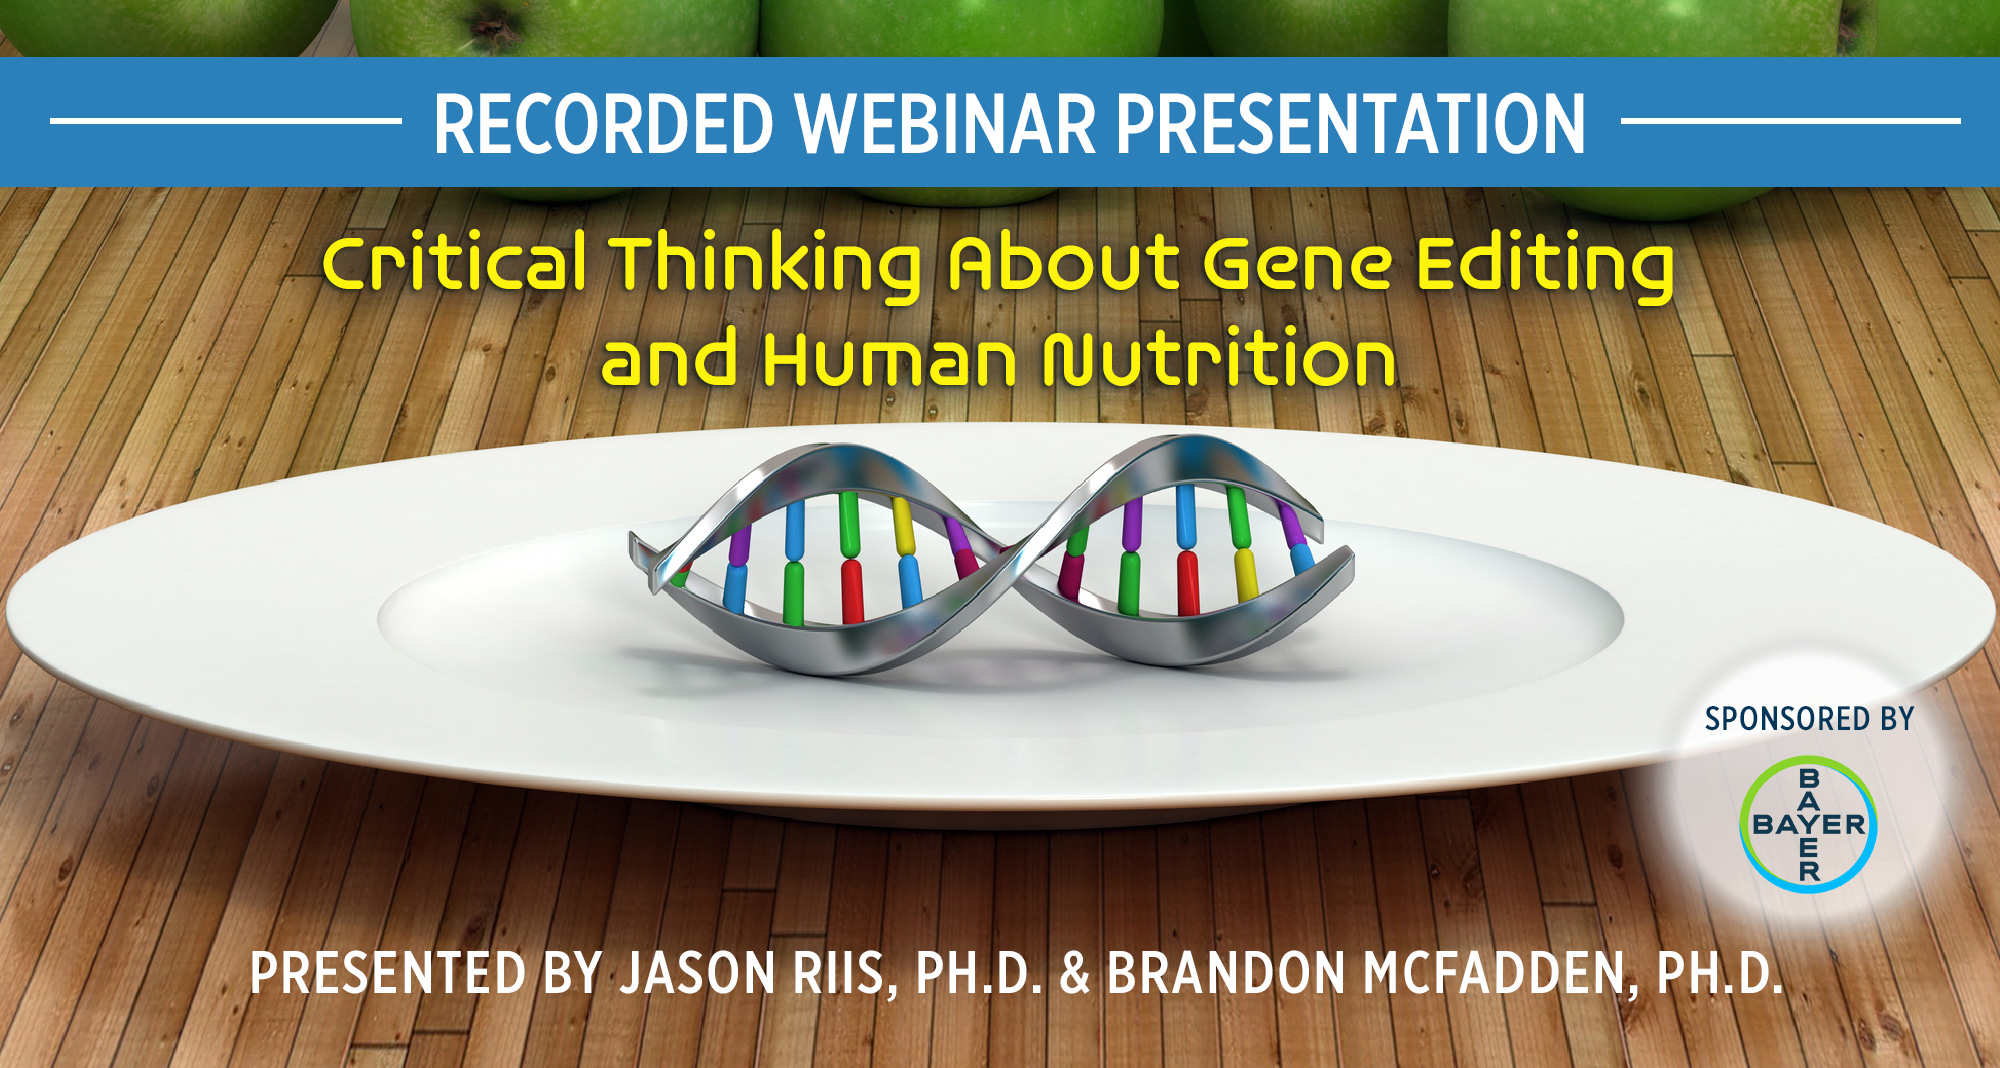 Recorded Webinar, Critical Thinking: Nutrition and Human Gene-Editing